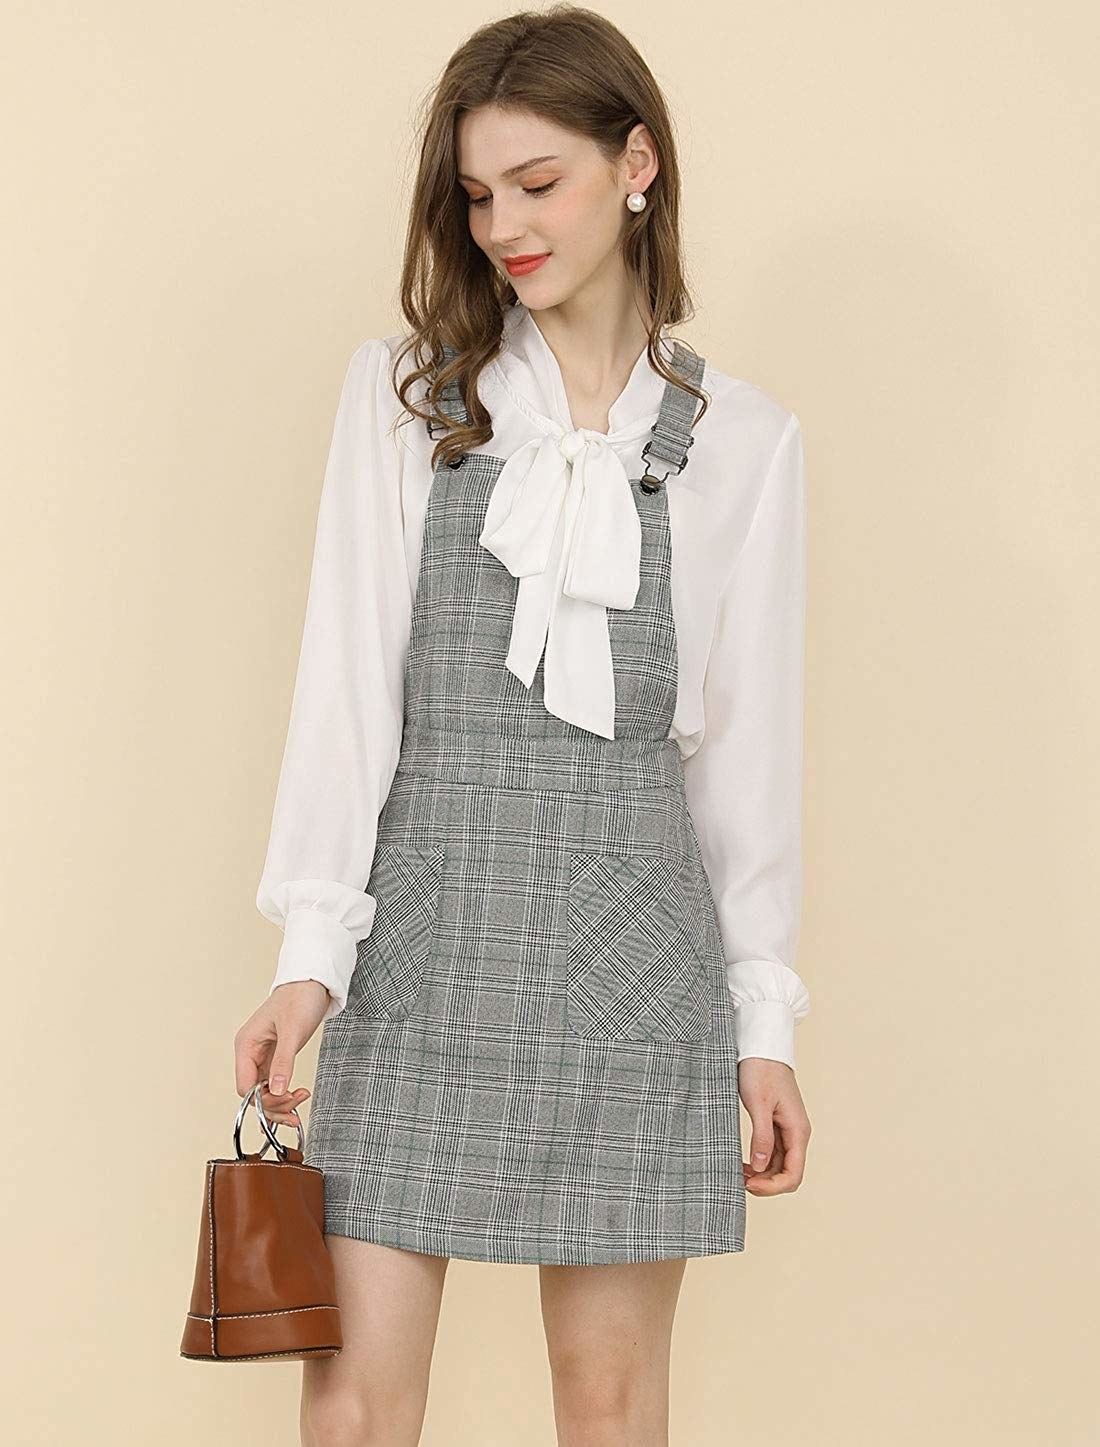 A model in the grey plaid dress with overall-style shoulder fasteners